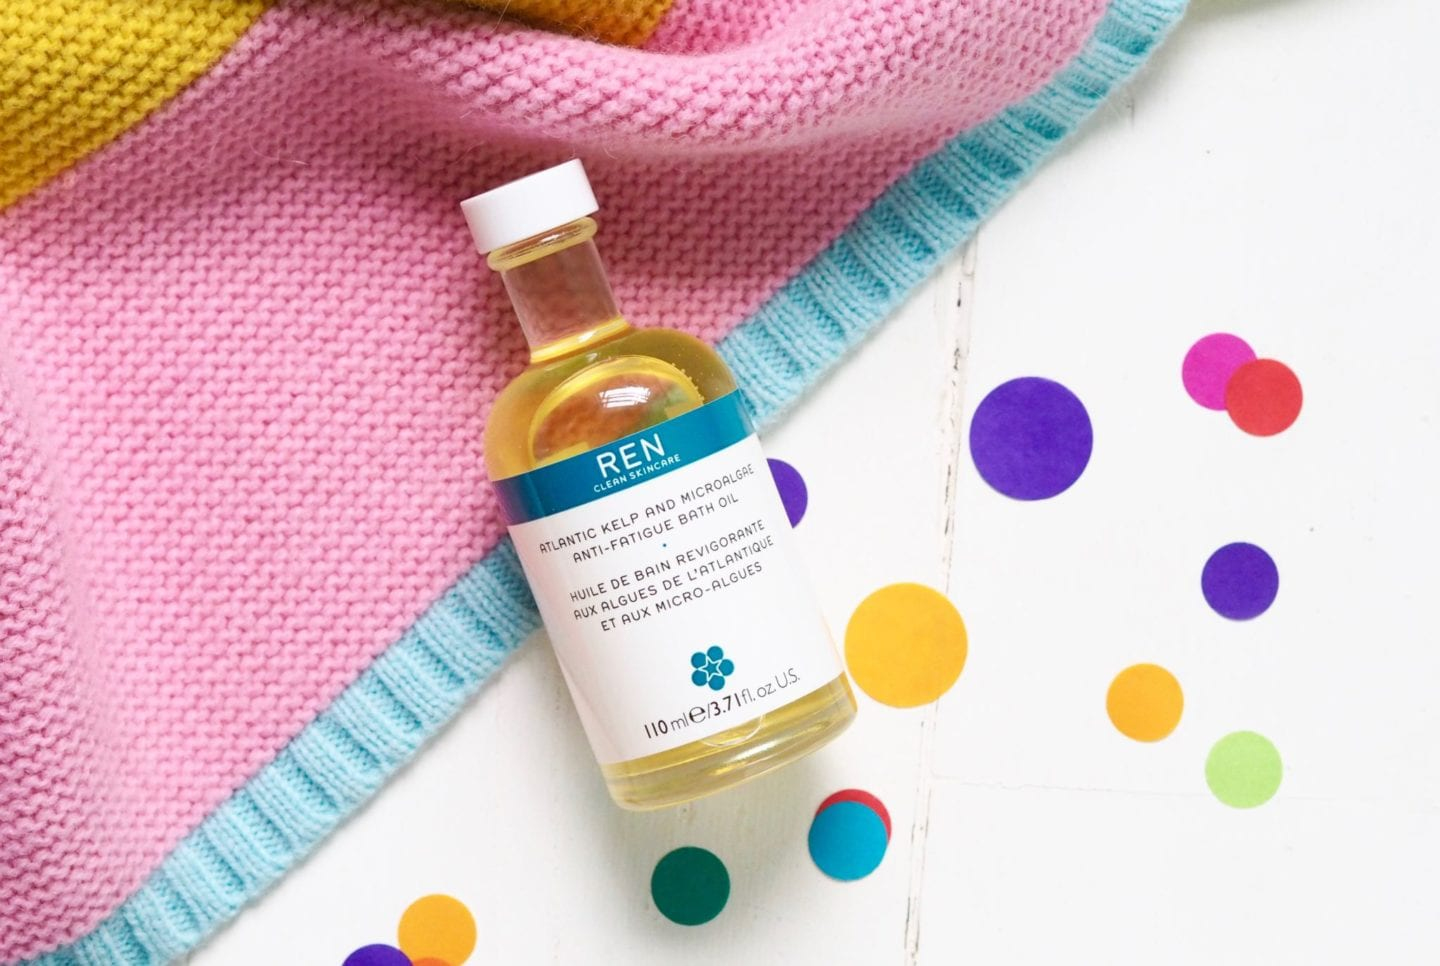 Ren Atlantic Kelp & Microalgae Bath Oil